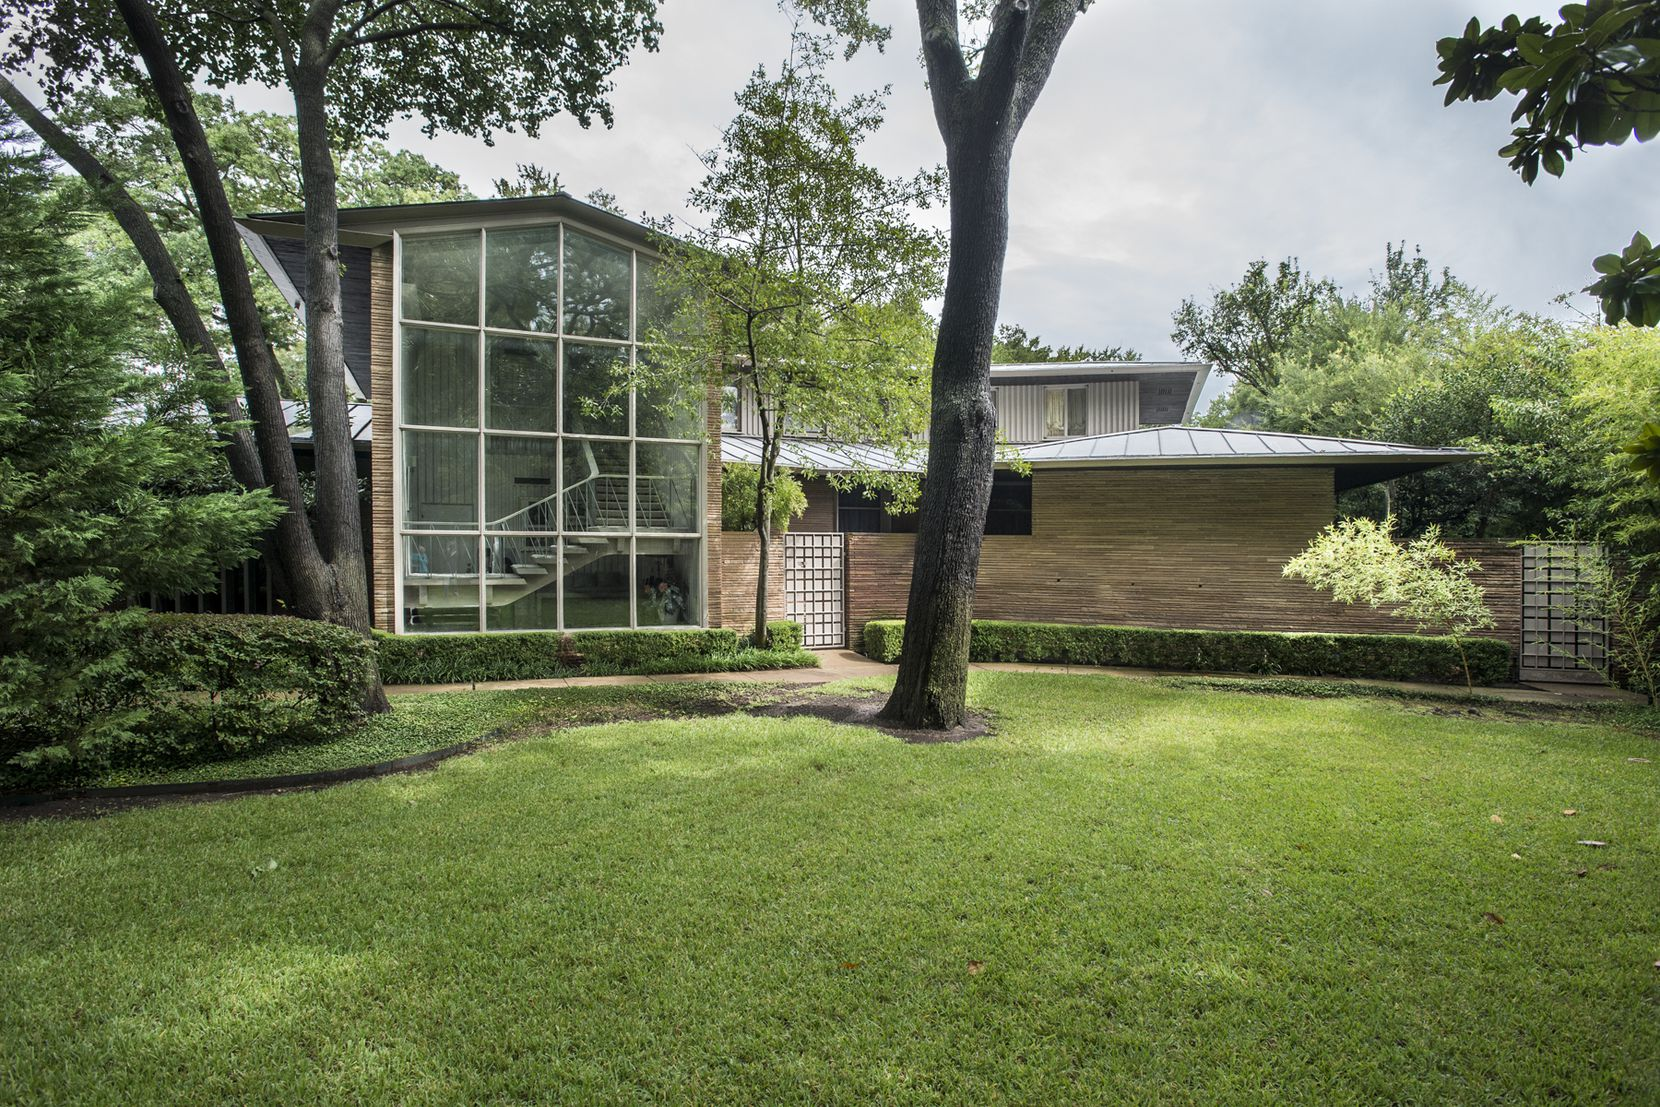 The Vaughn house in Preston Hollow, built in 1951 and scheduled for auction in February